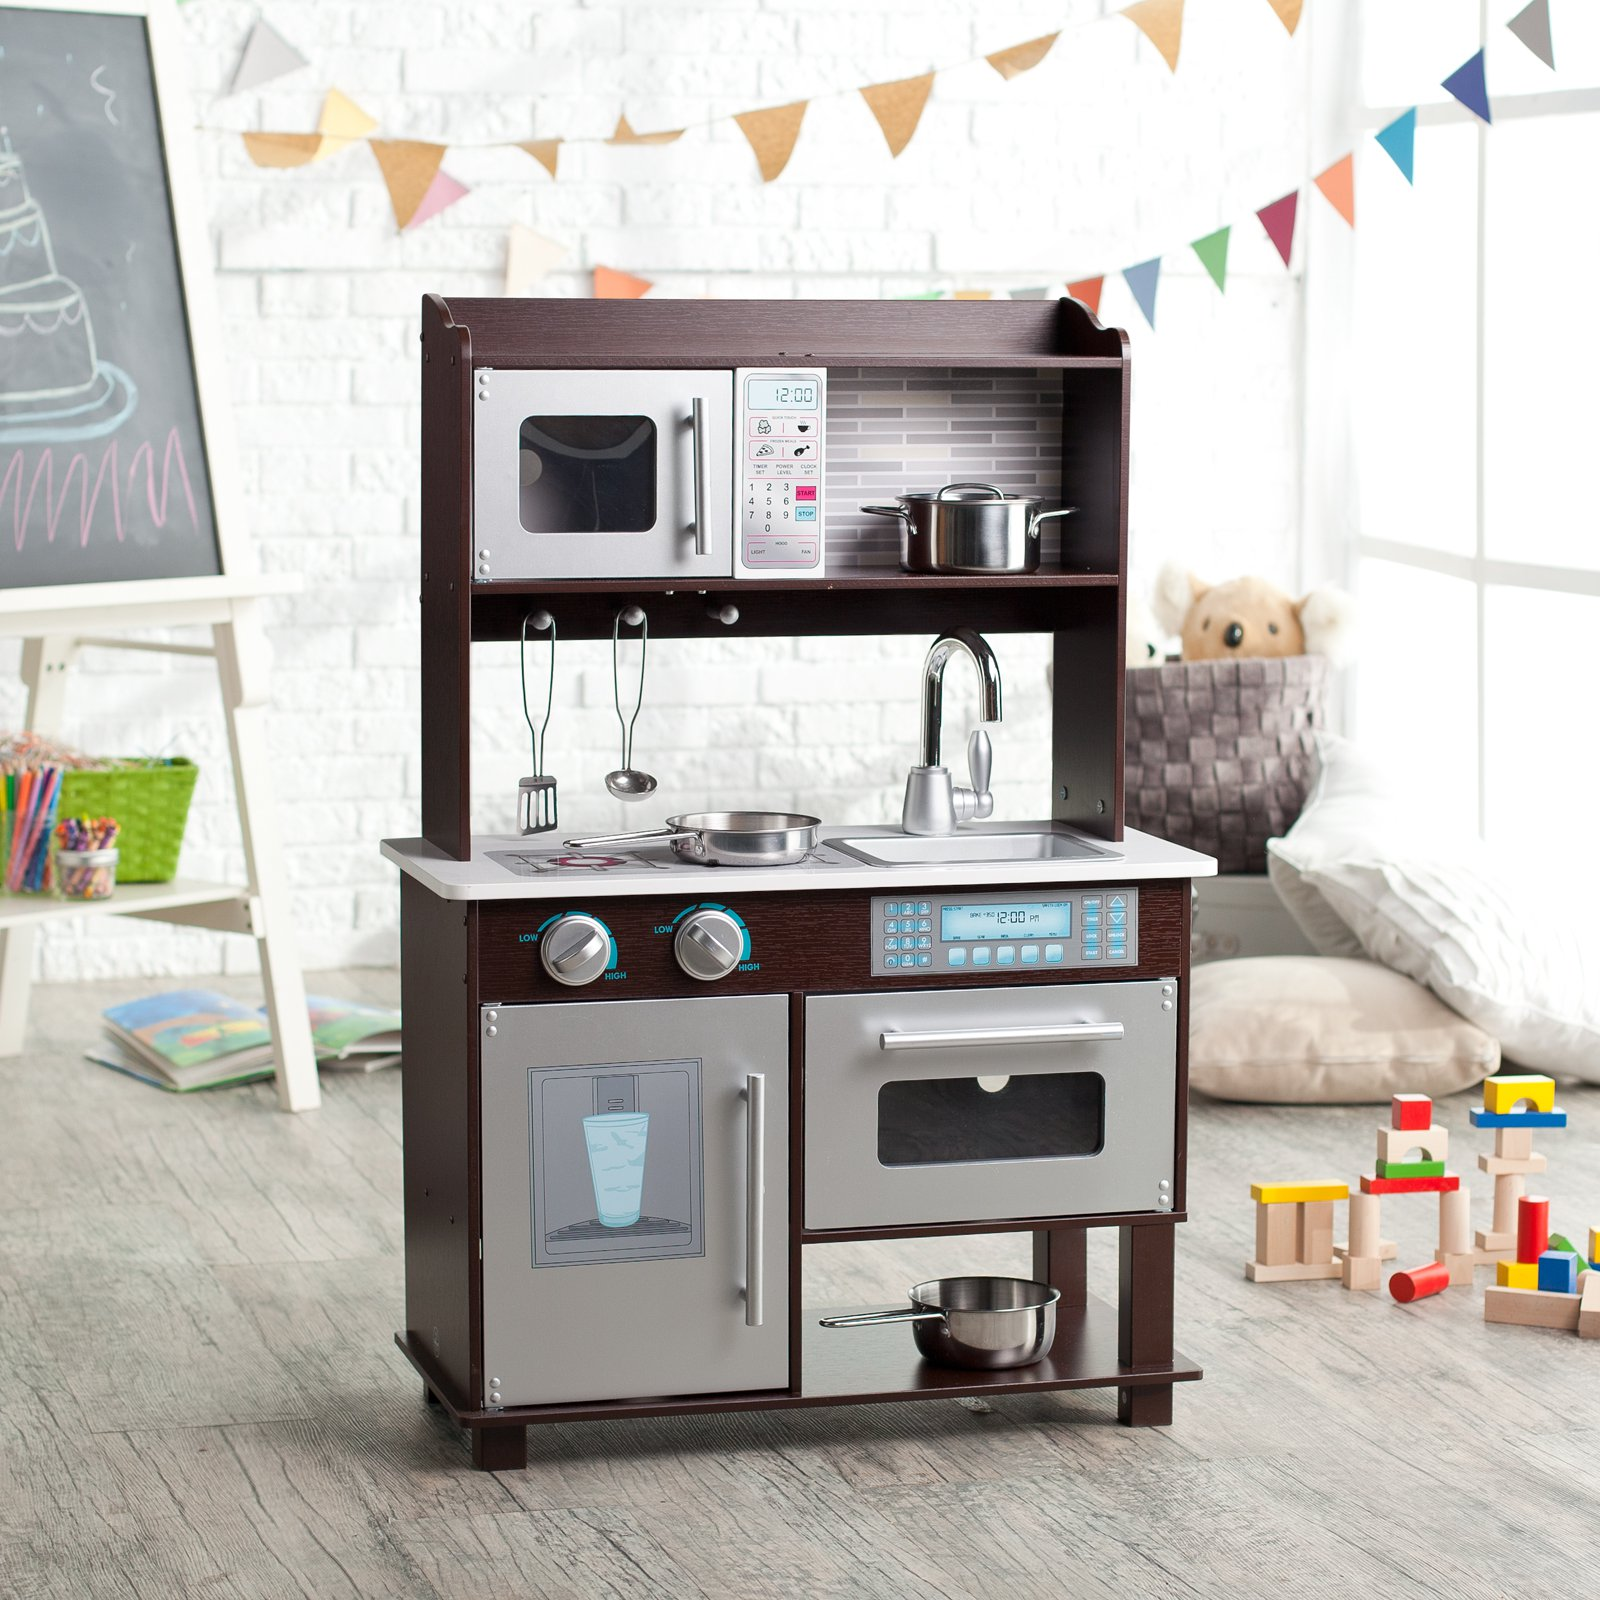 Awesome KidKraft Espresso Toddler Play Kitchen With Metal Accessory Set   53281    Walmart.com